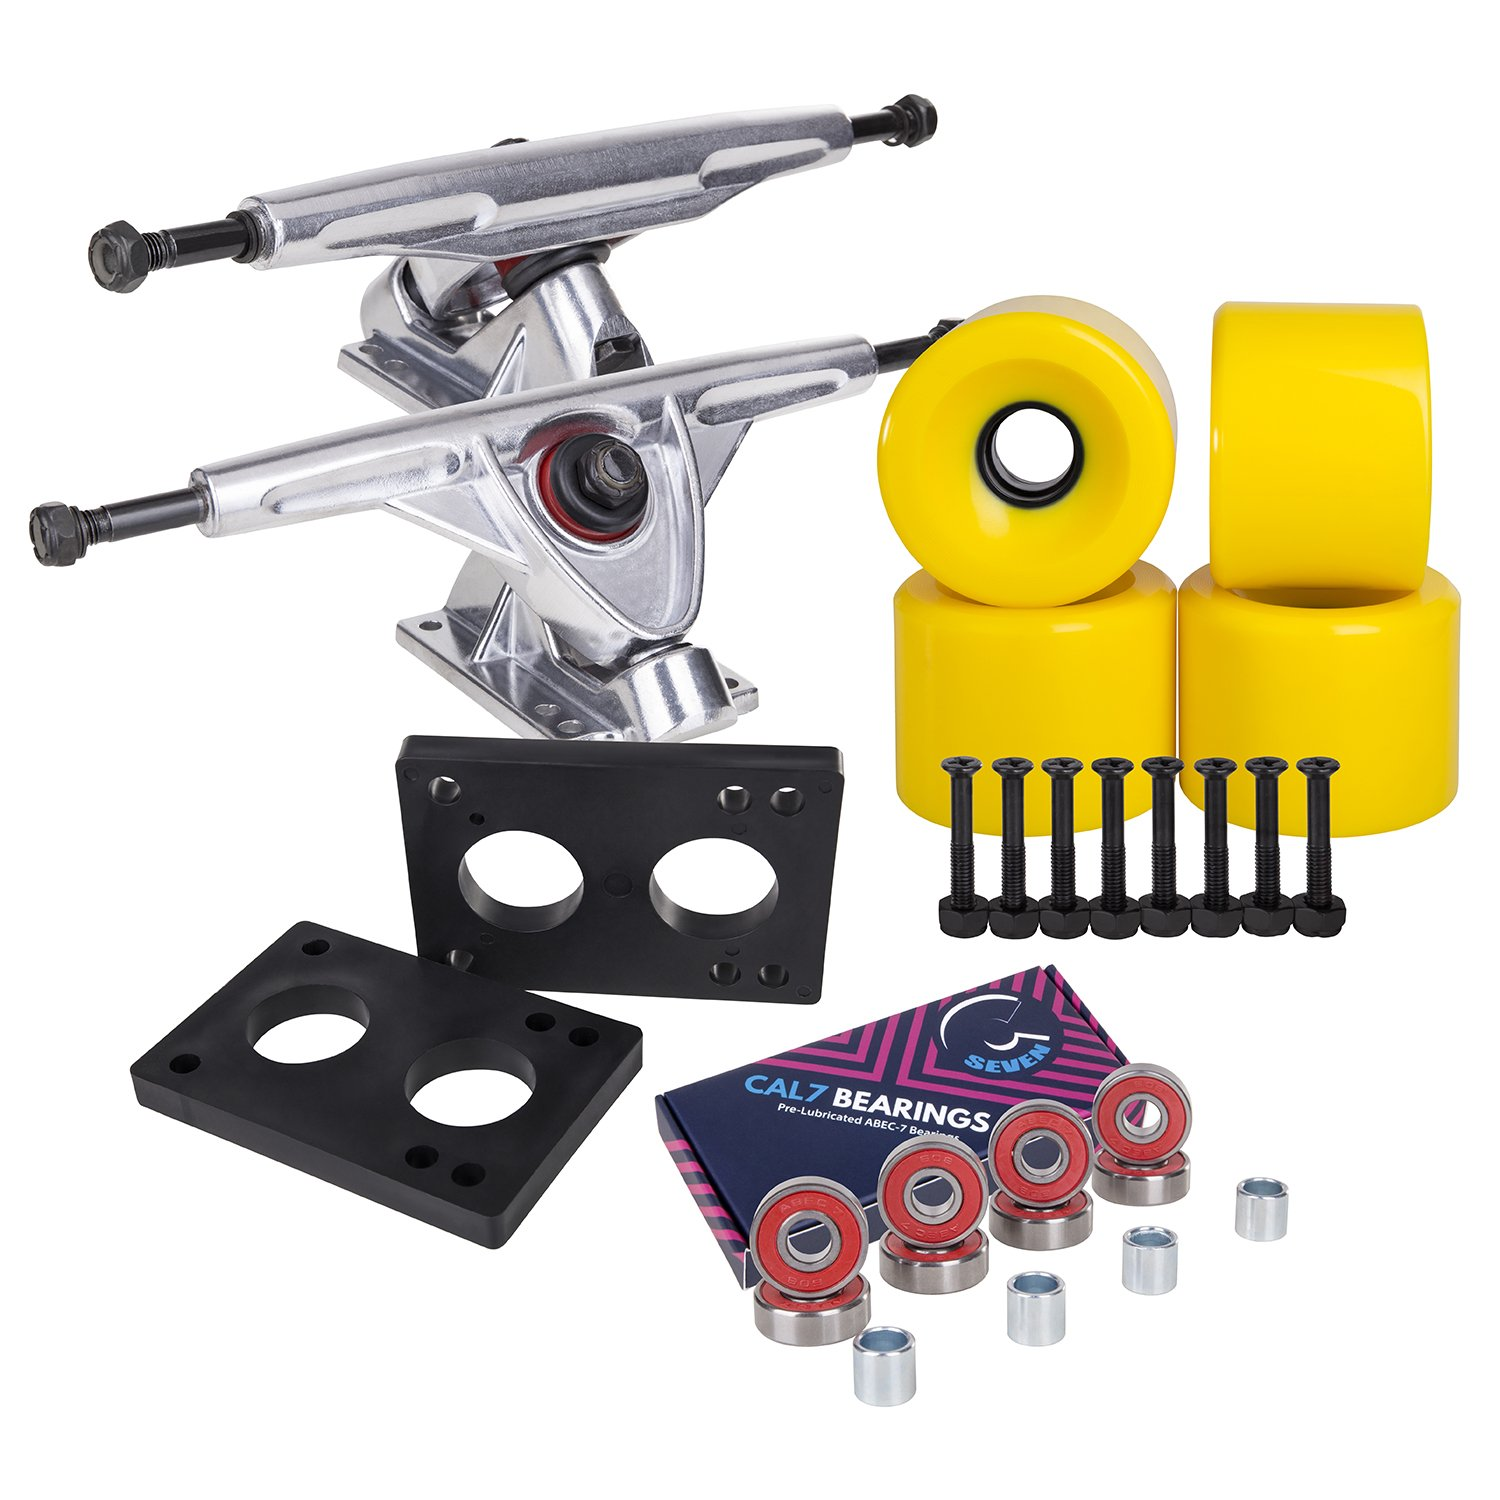 Cal 7 Longboard Skateboard Combo Package with 70mm Wheels & 180mm Lightweight Aluminum Trucks, Bearings Complete Set & Steel Hardware (Silver Truck + Solid Yellow Wheels) by Cal 7